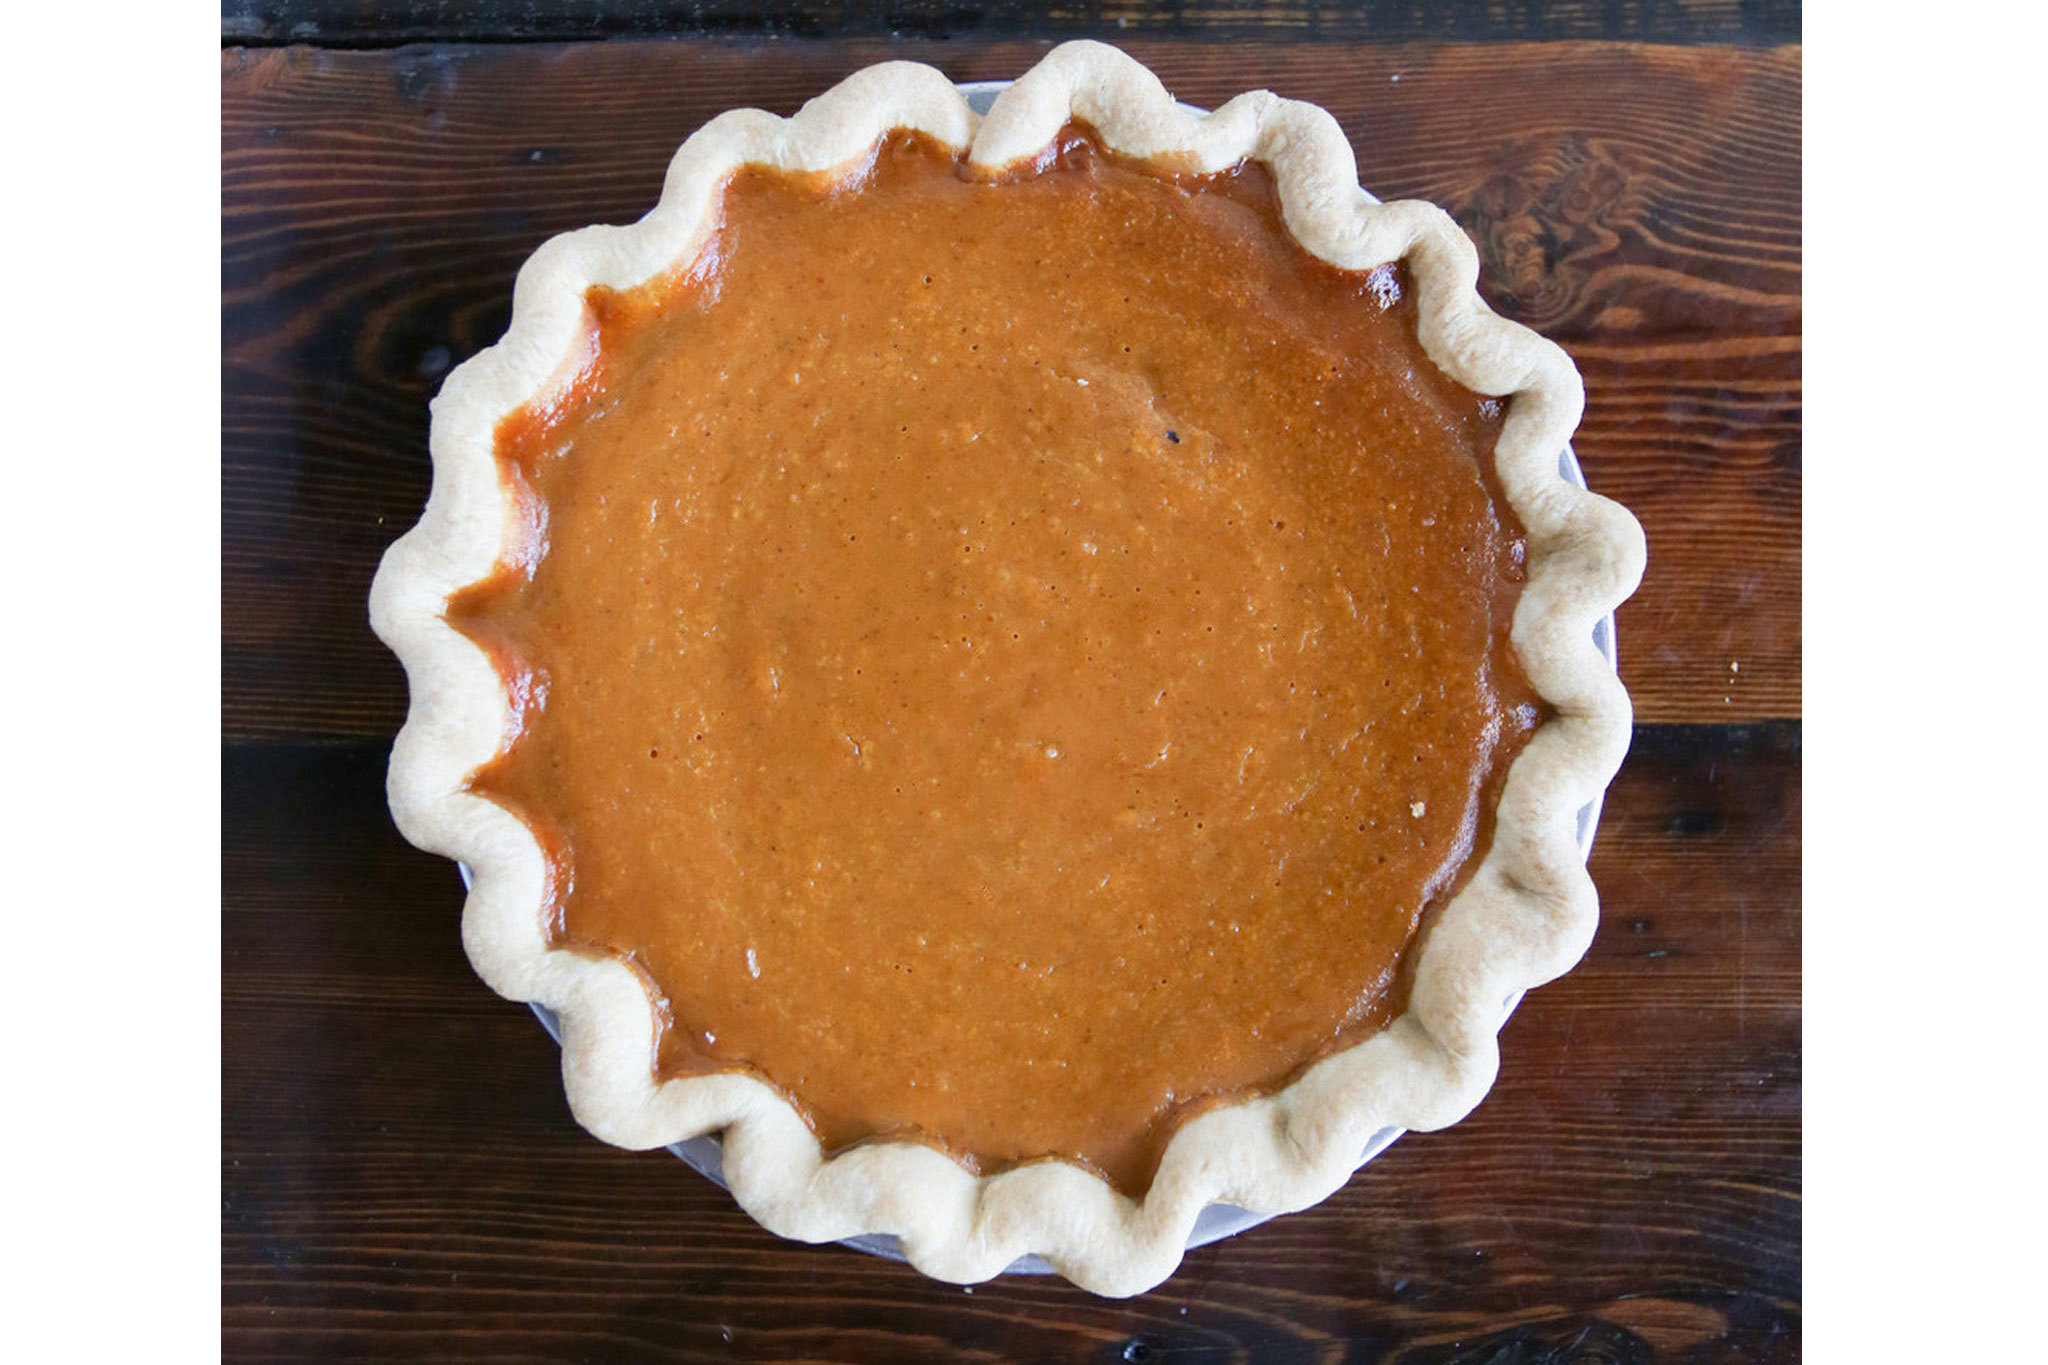 The Pie Hole pumpkin pie